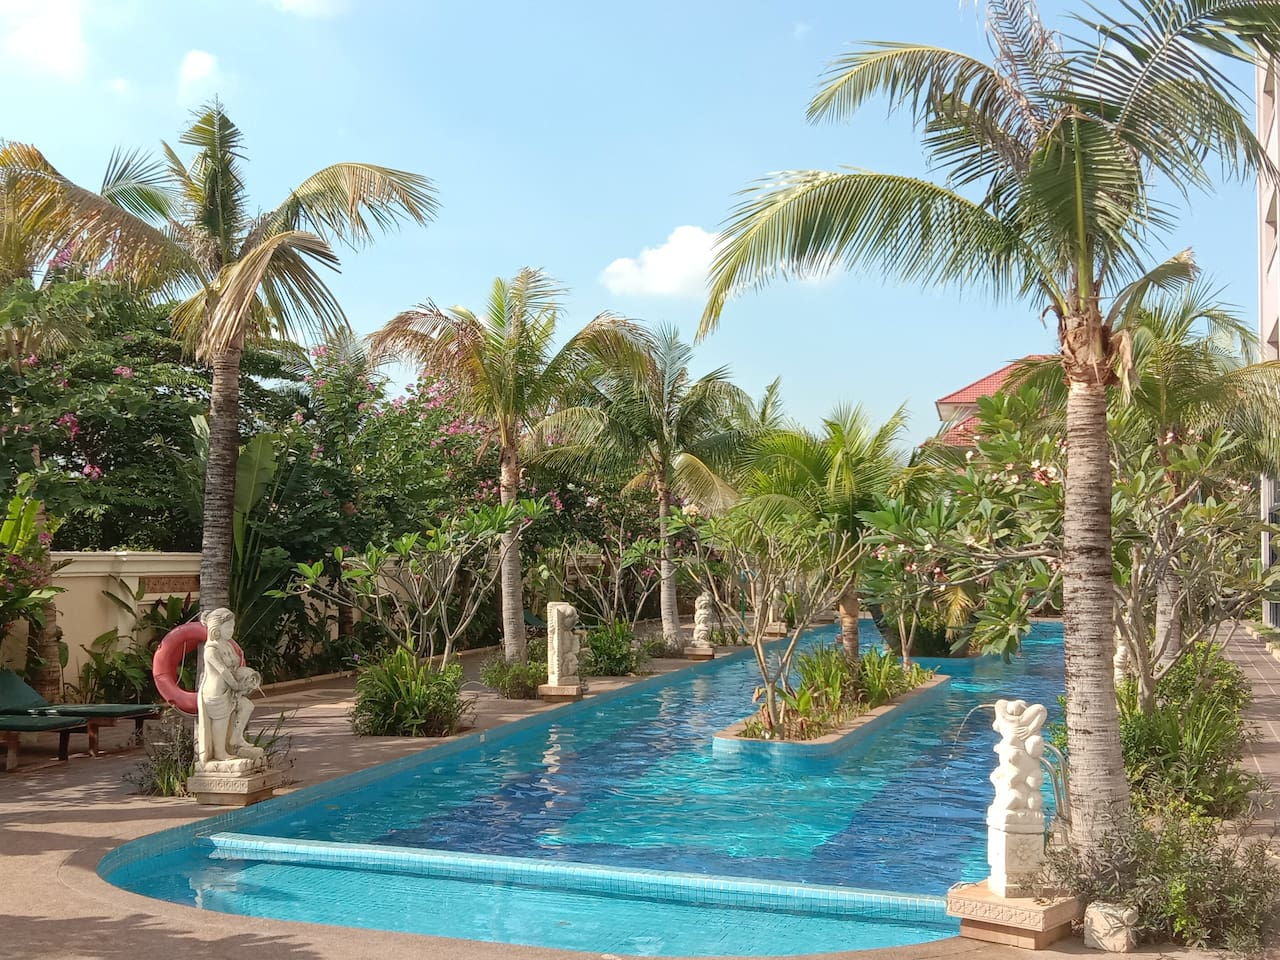 Tropical, warm, and enchanting afternoons by the pool await you :)